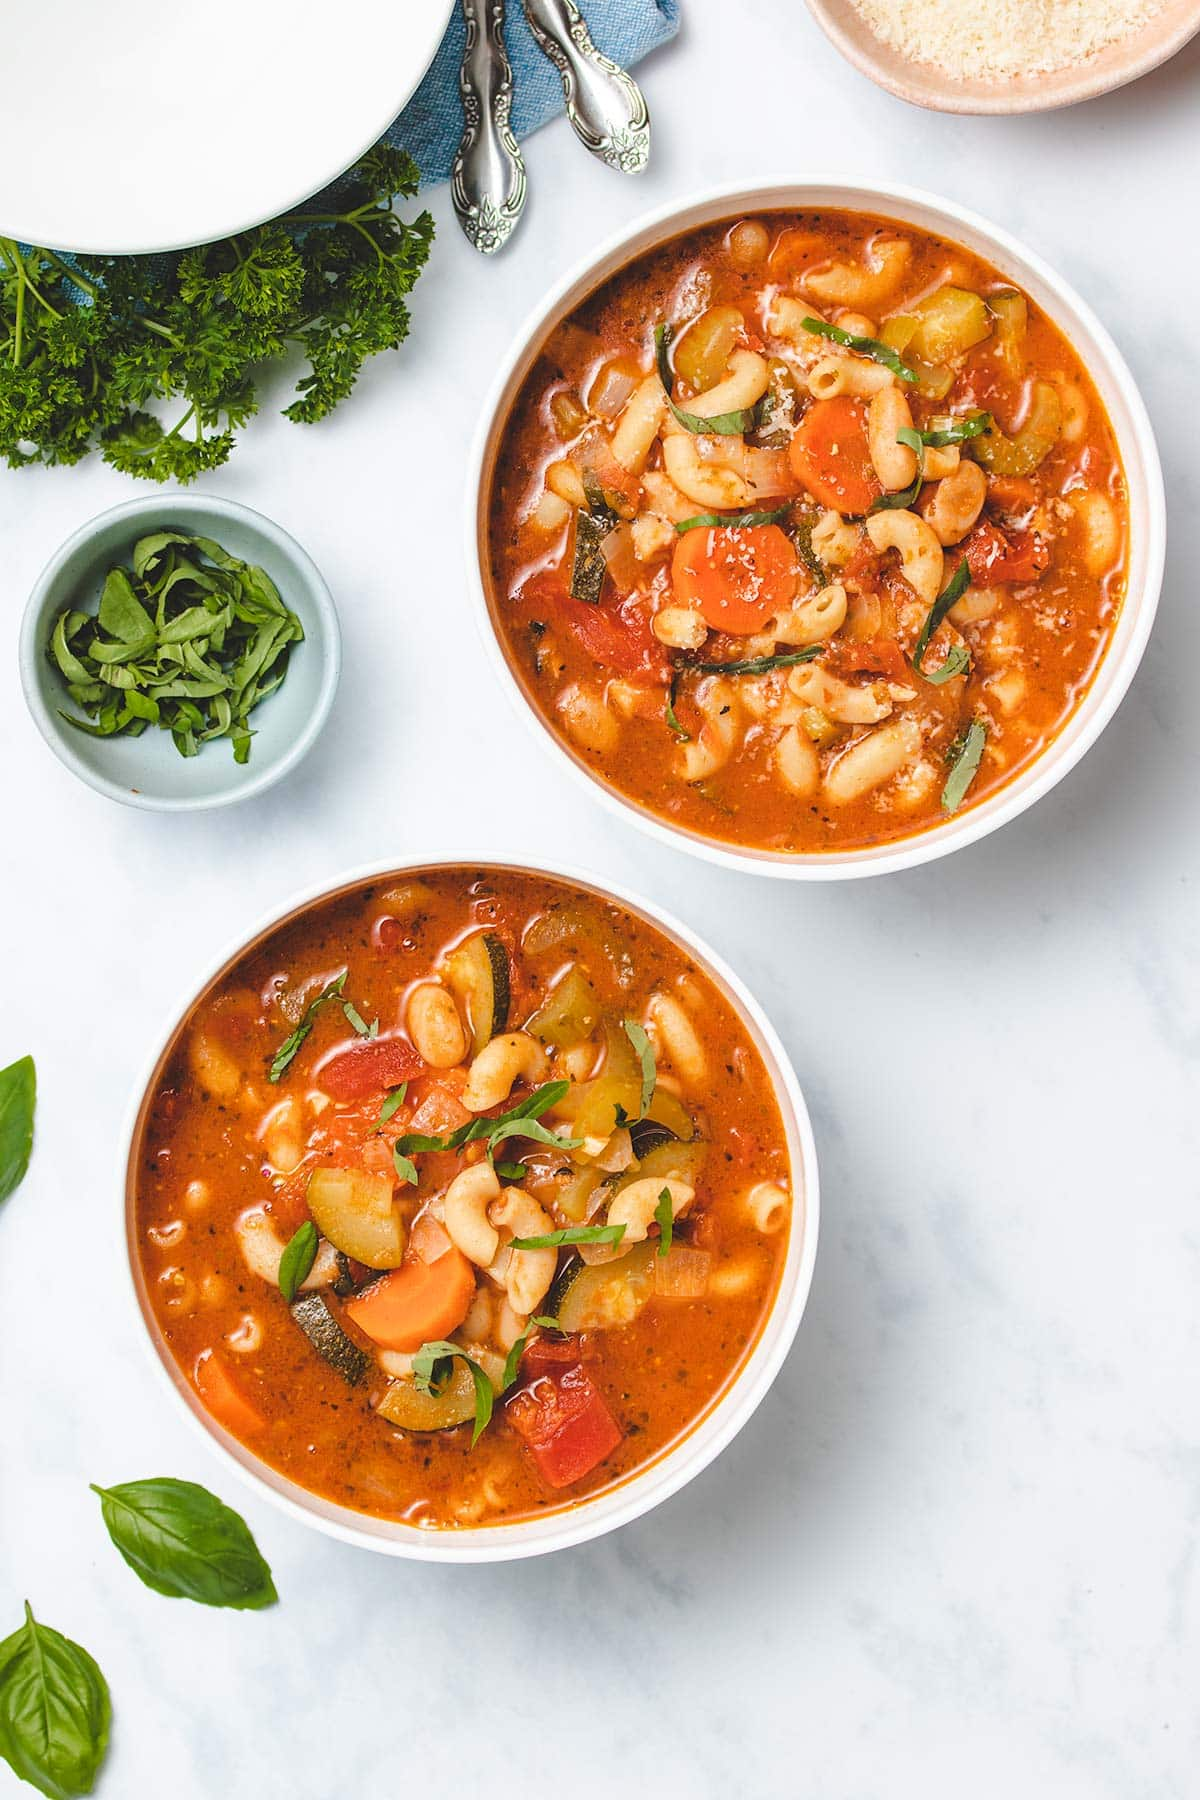 Instant Pot Vegetable Soup in two white bowls garnished with fresh basil and parmesan